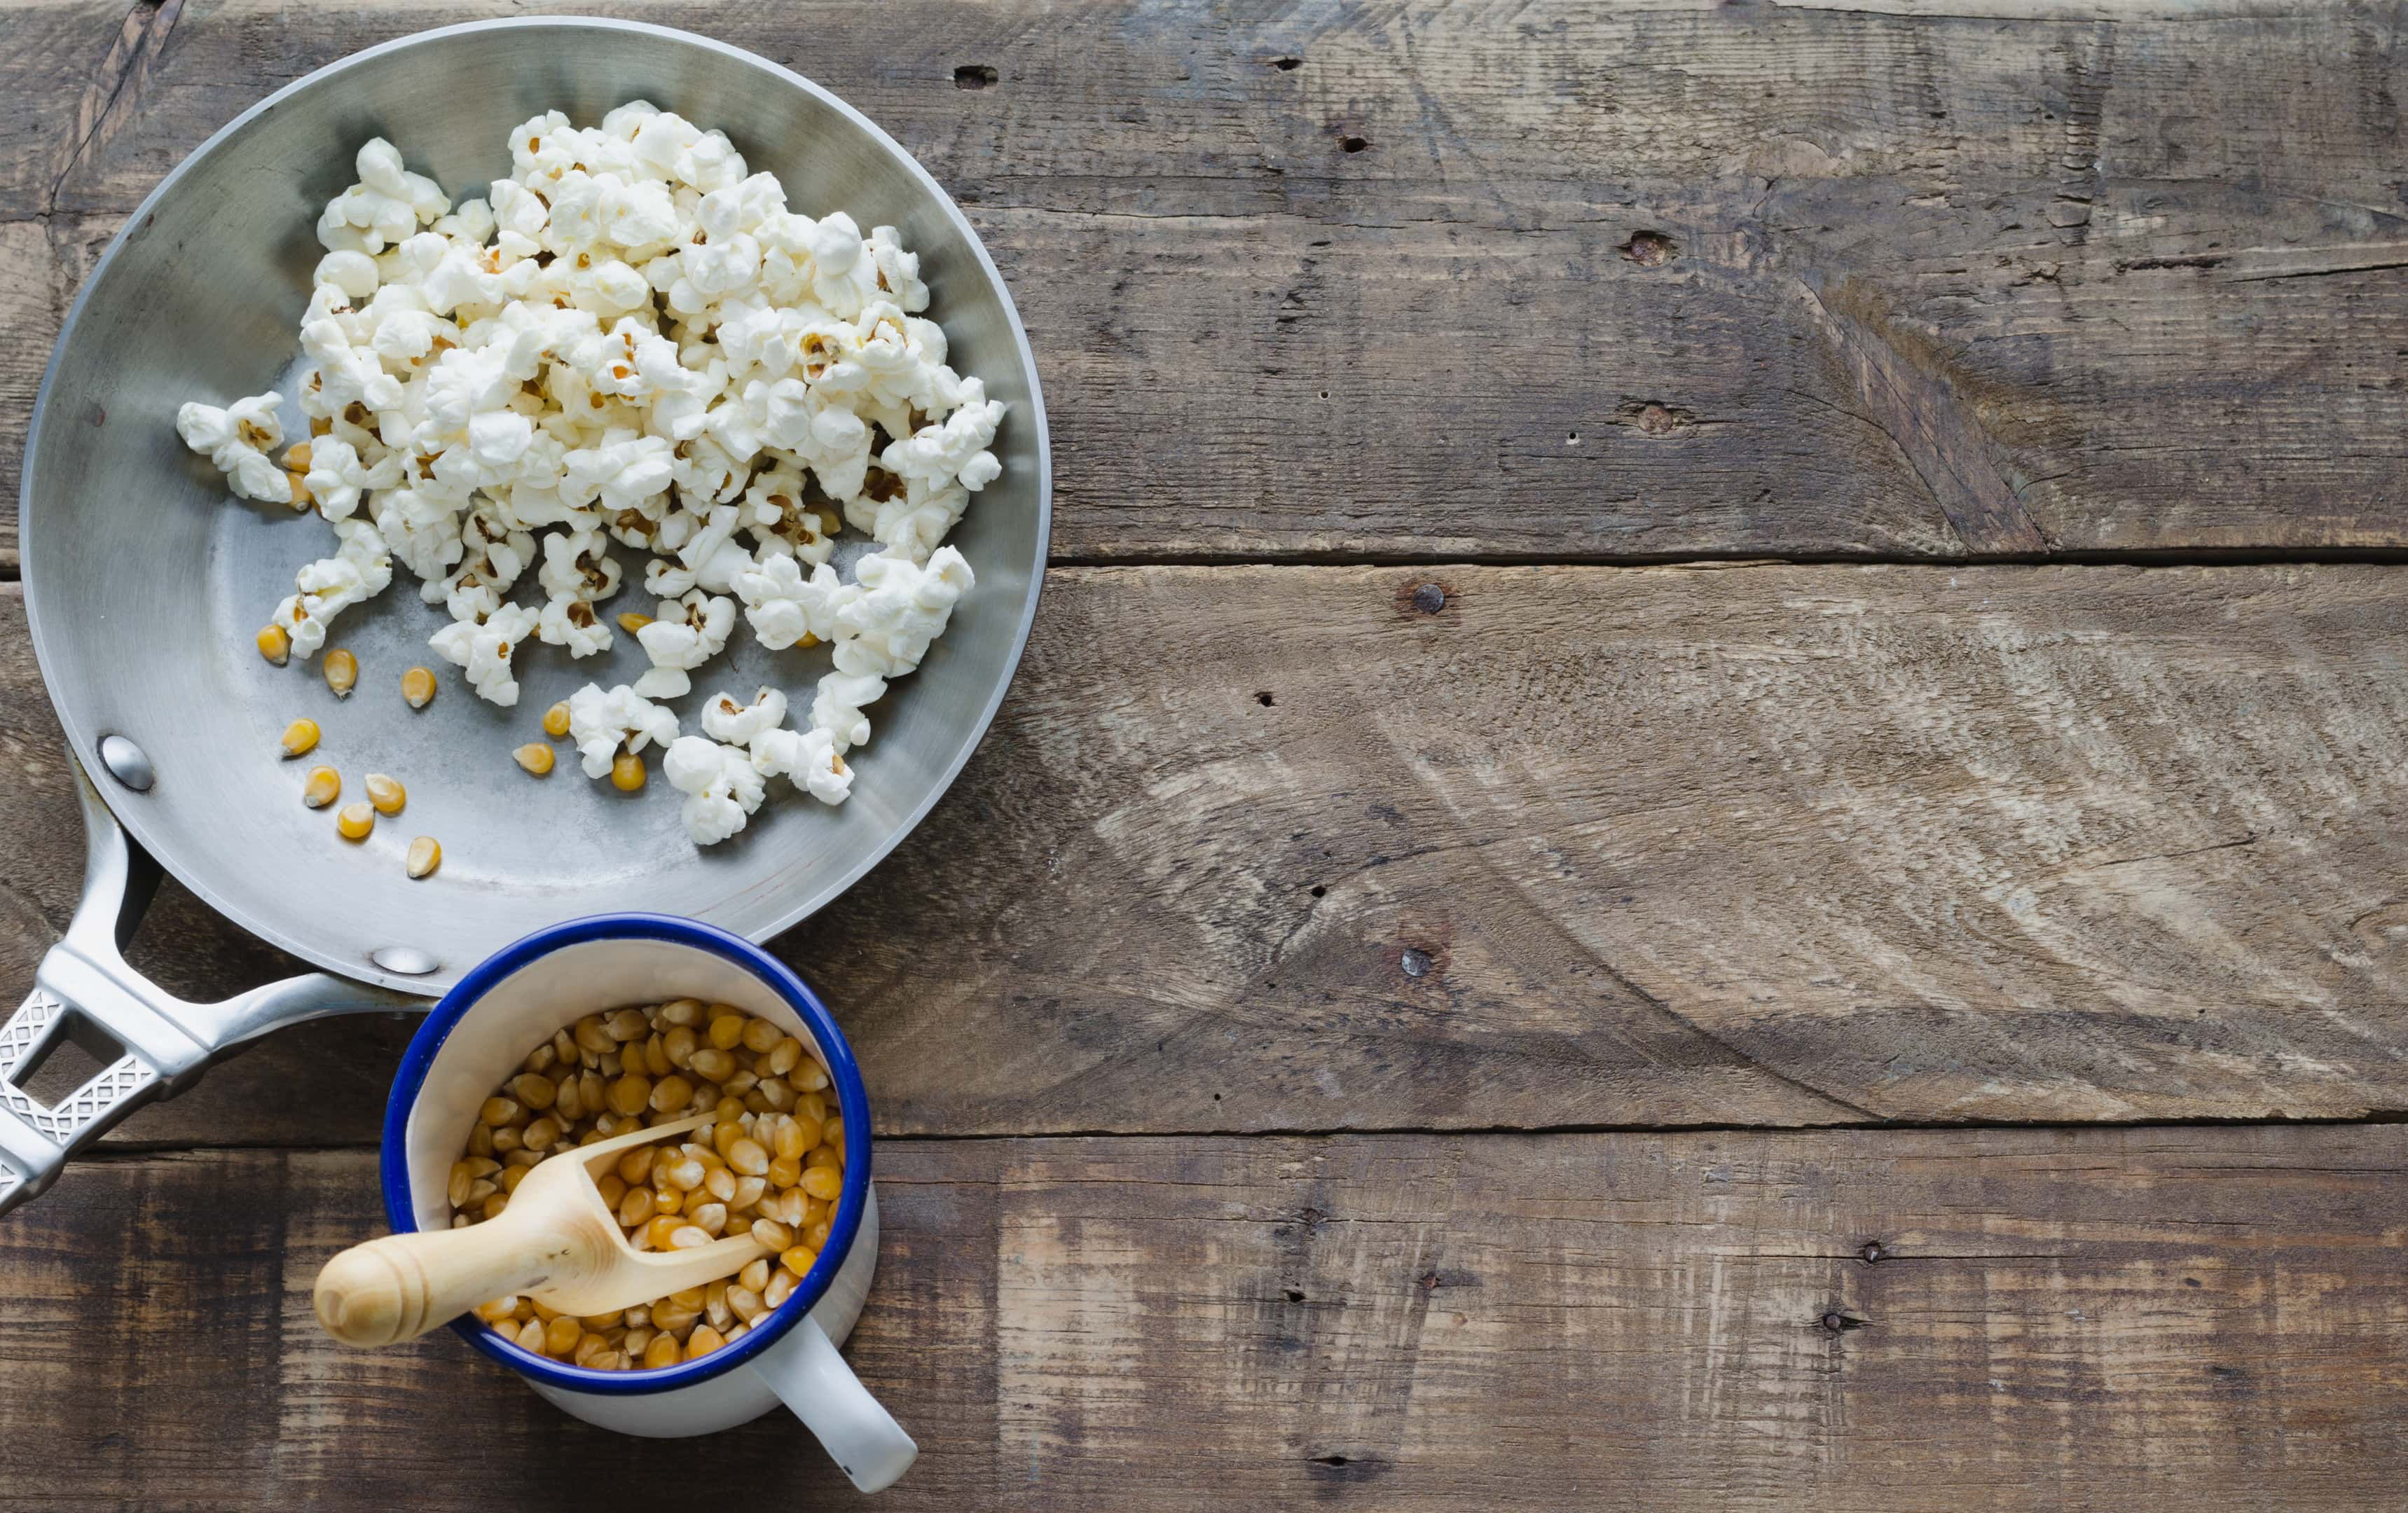 Skillet with corn and popcorn